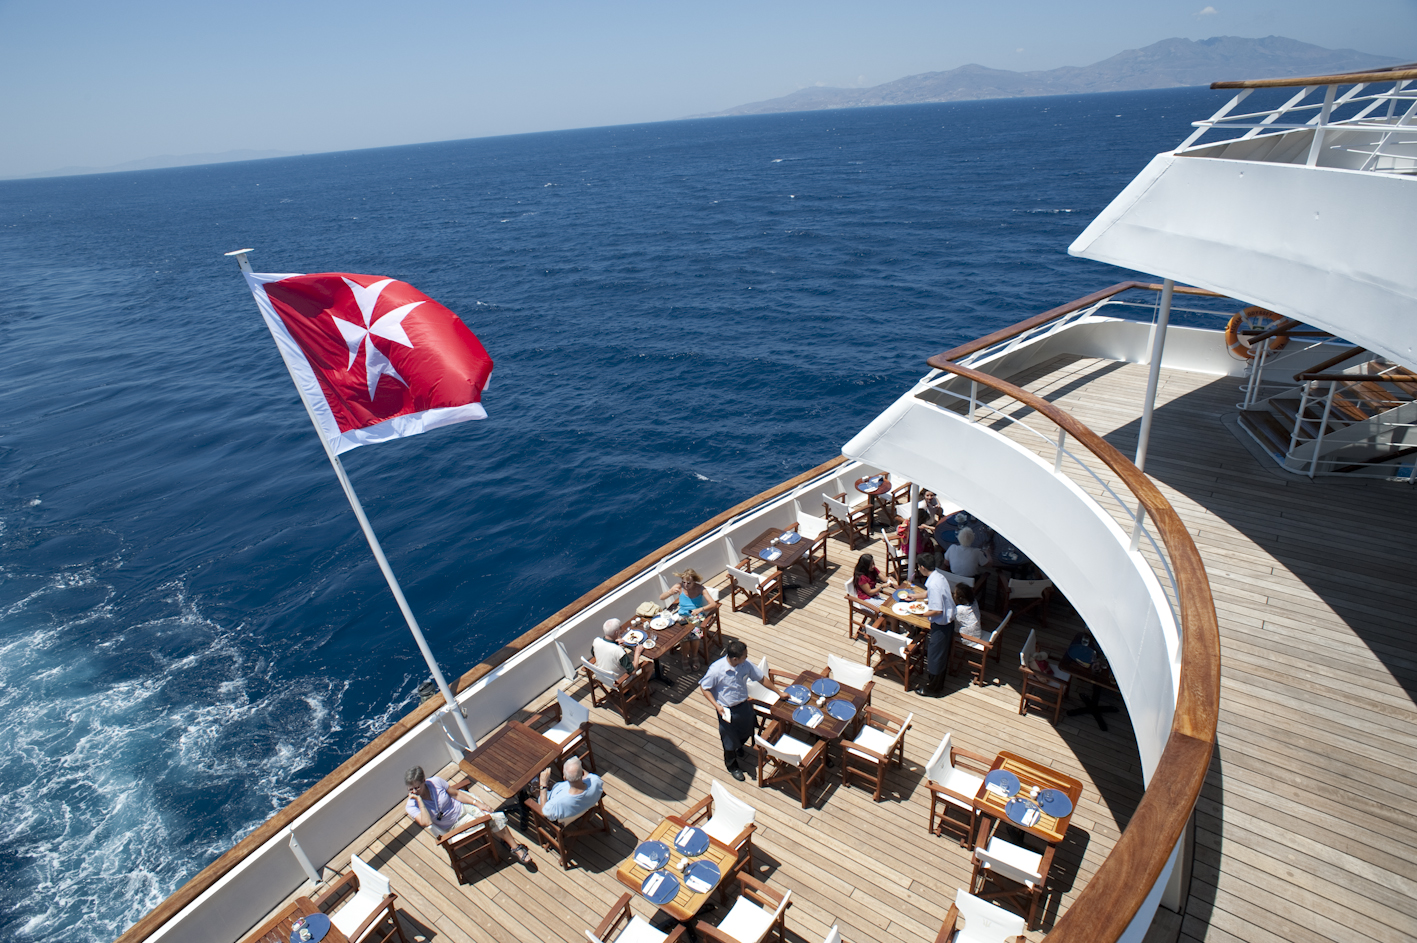 Voyages to Antiquity Aegean Odyssey terrace.jpg